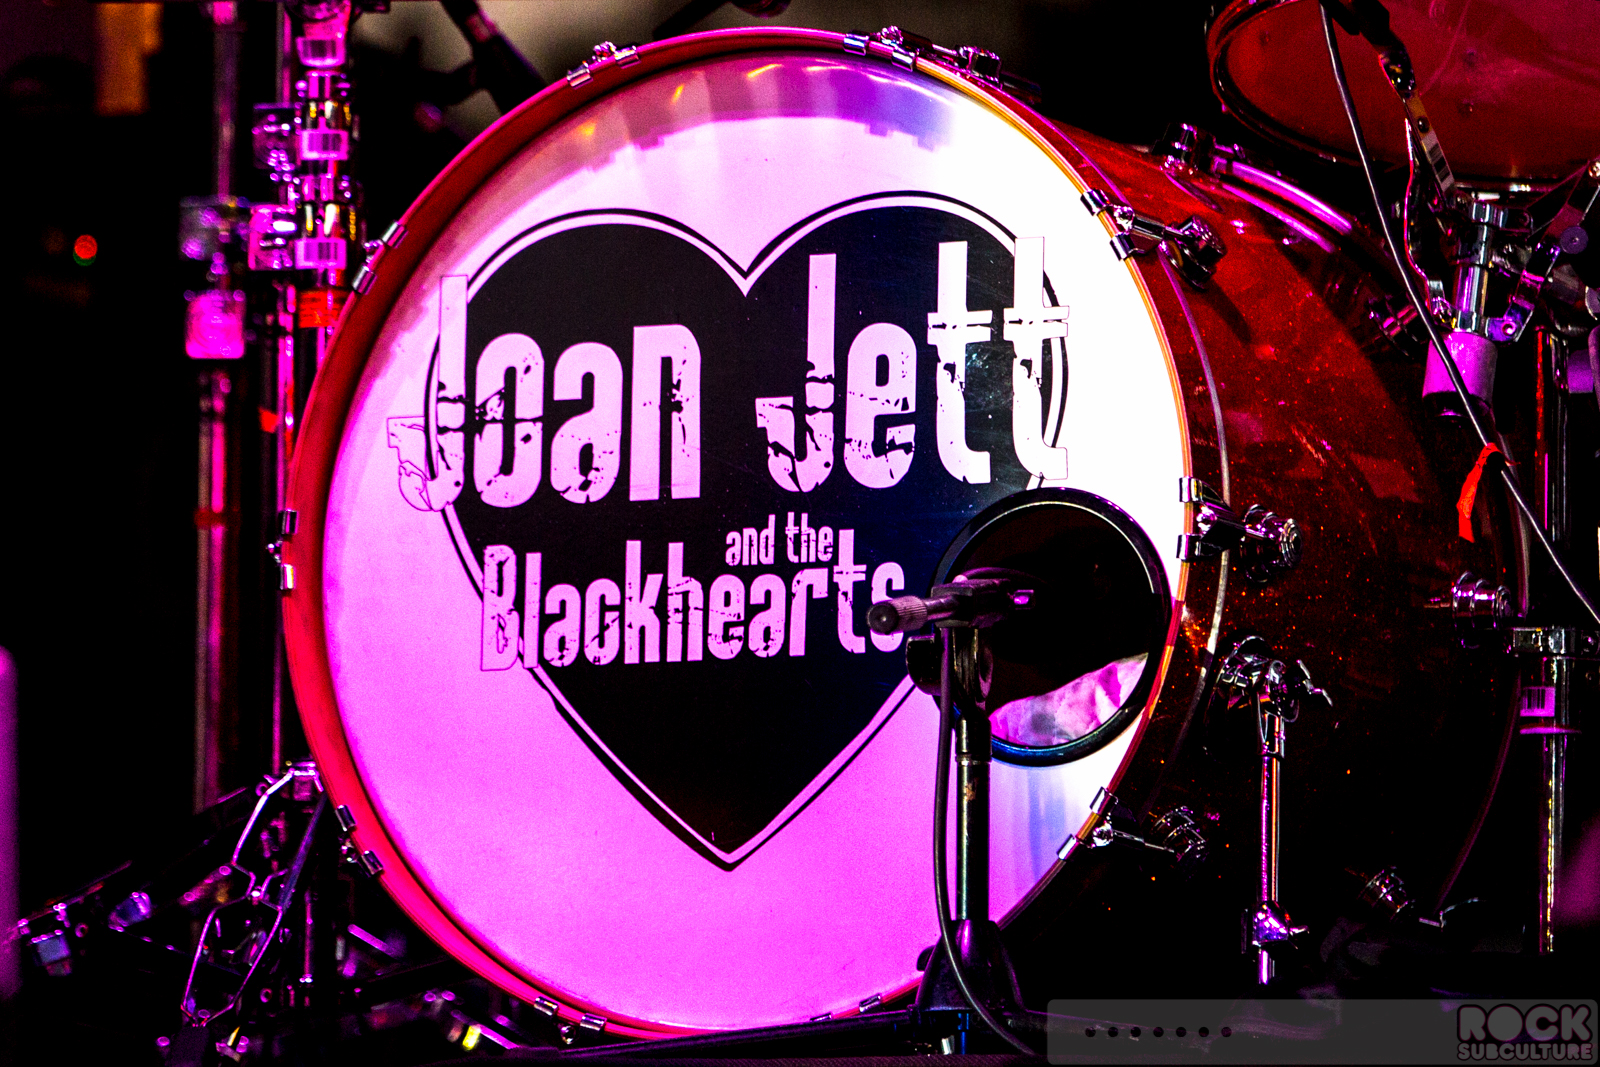 Joan Jett and the Blackhearts at Cal Expo (California State